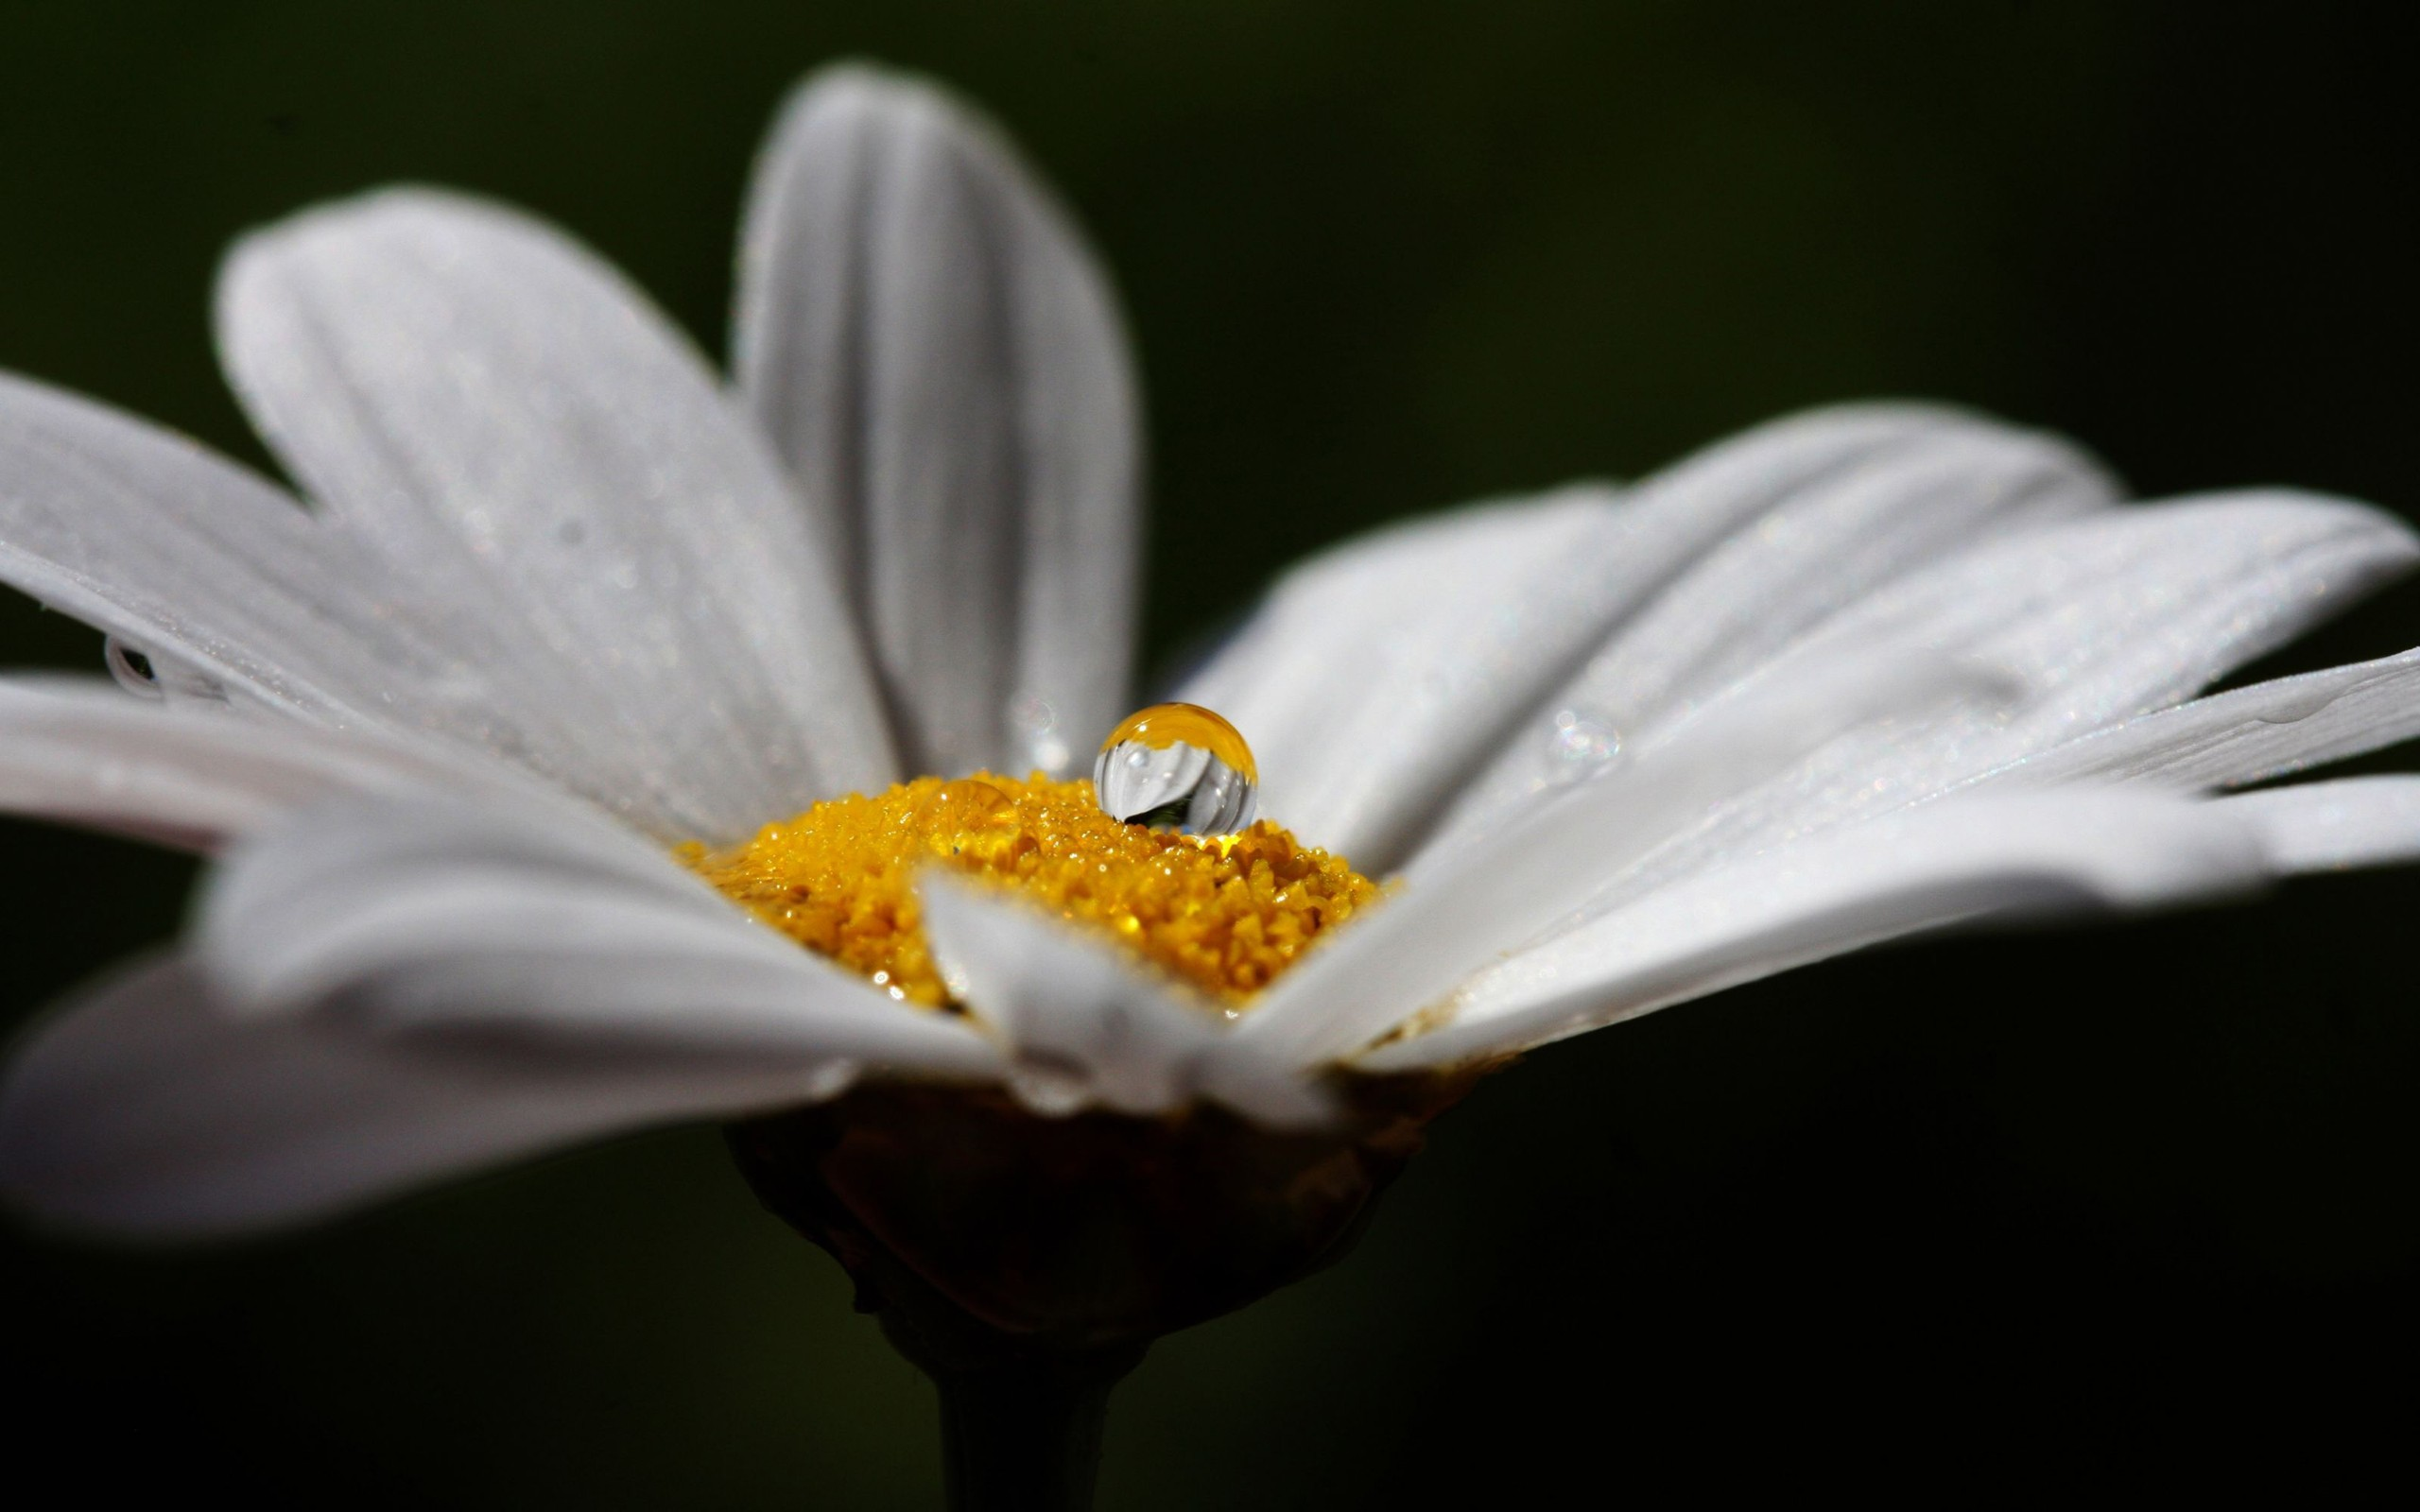 A drop of dew on the middle, chamomile